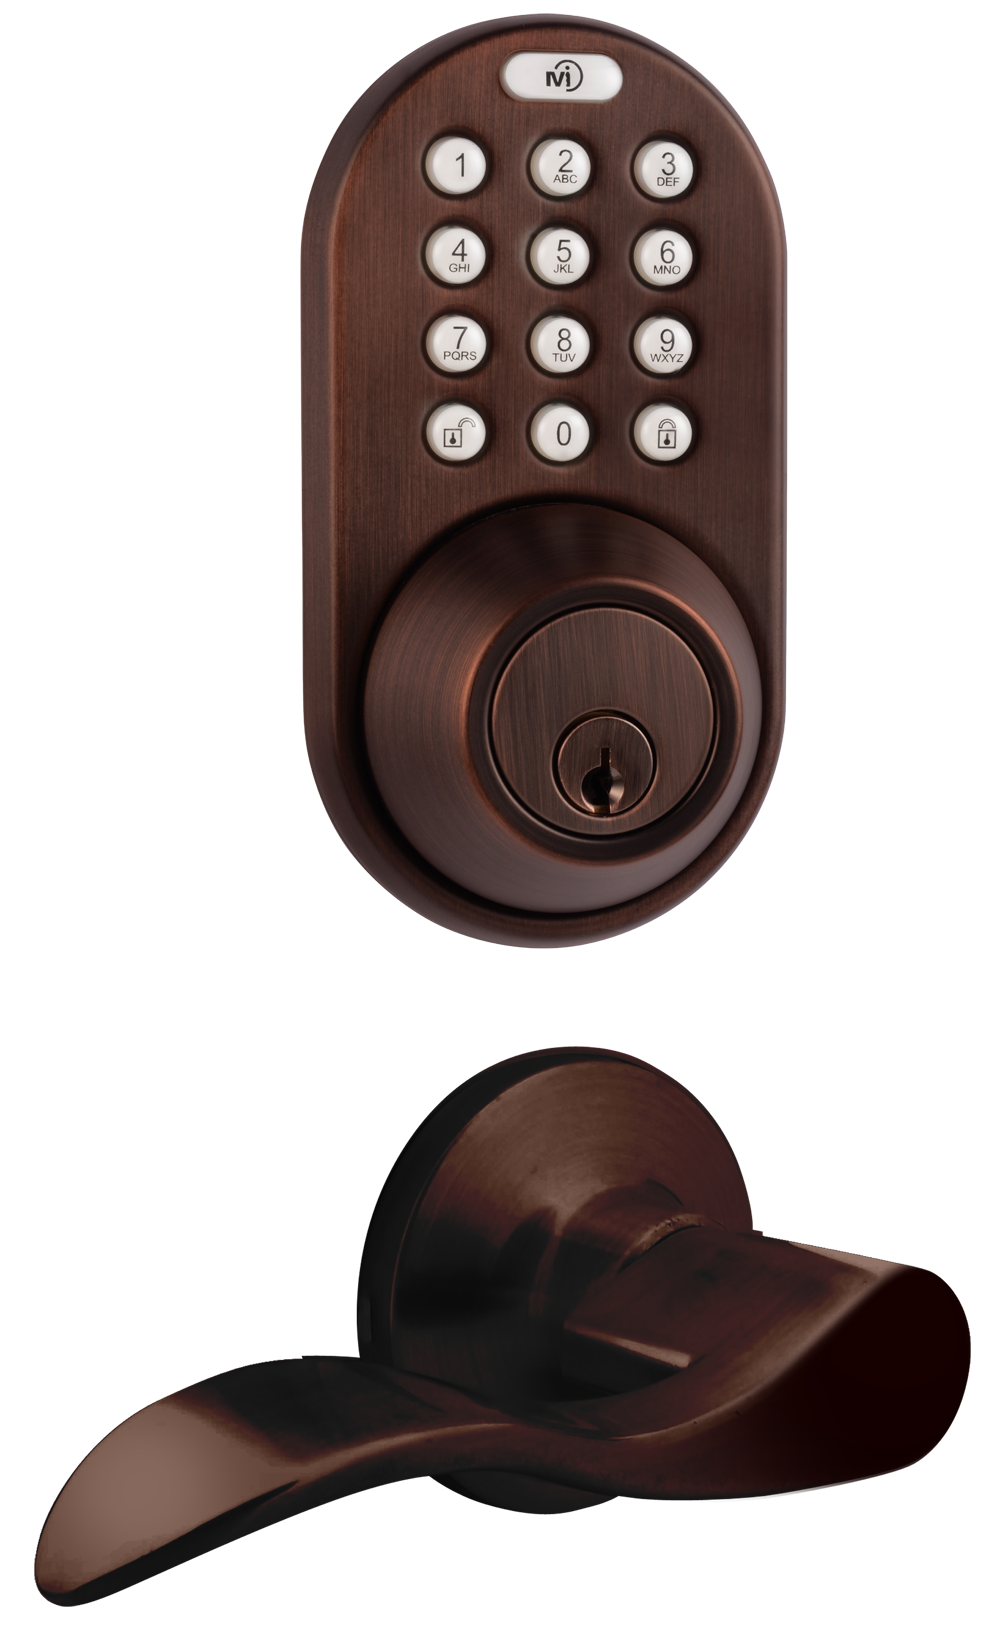 keyless entry deadbolt and lever handle door lock combo pack with rf remote control and electronic